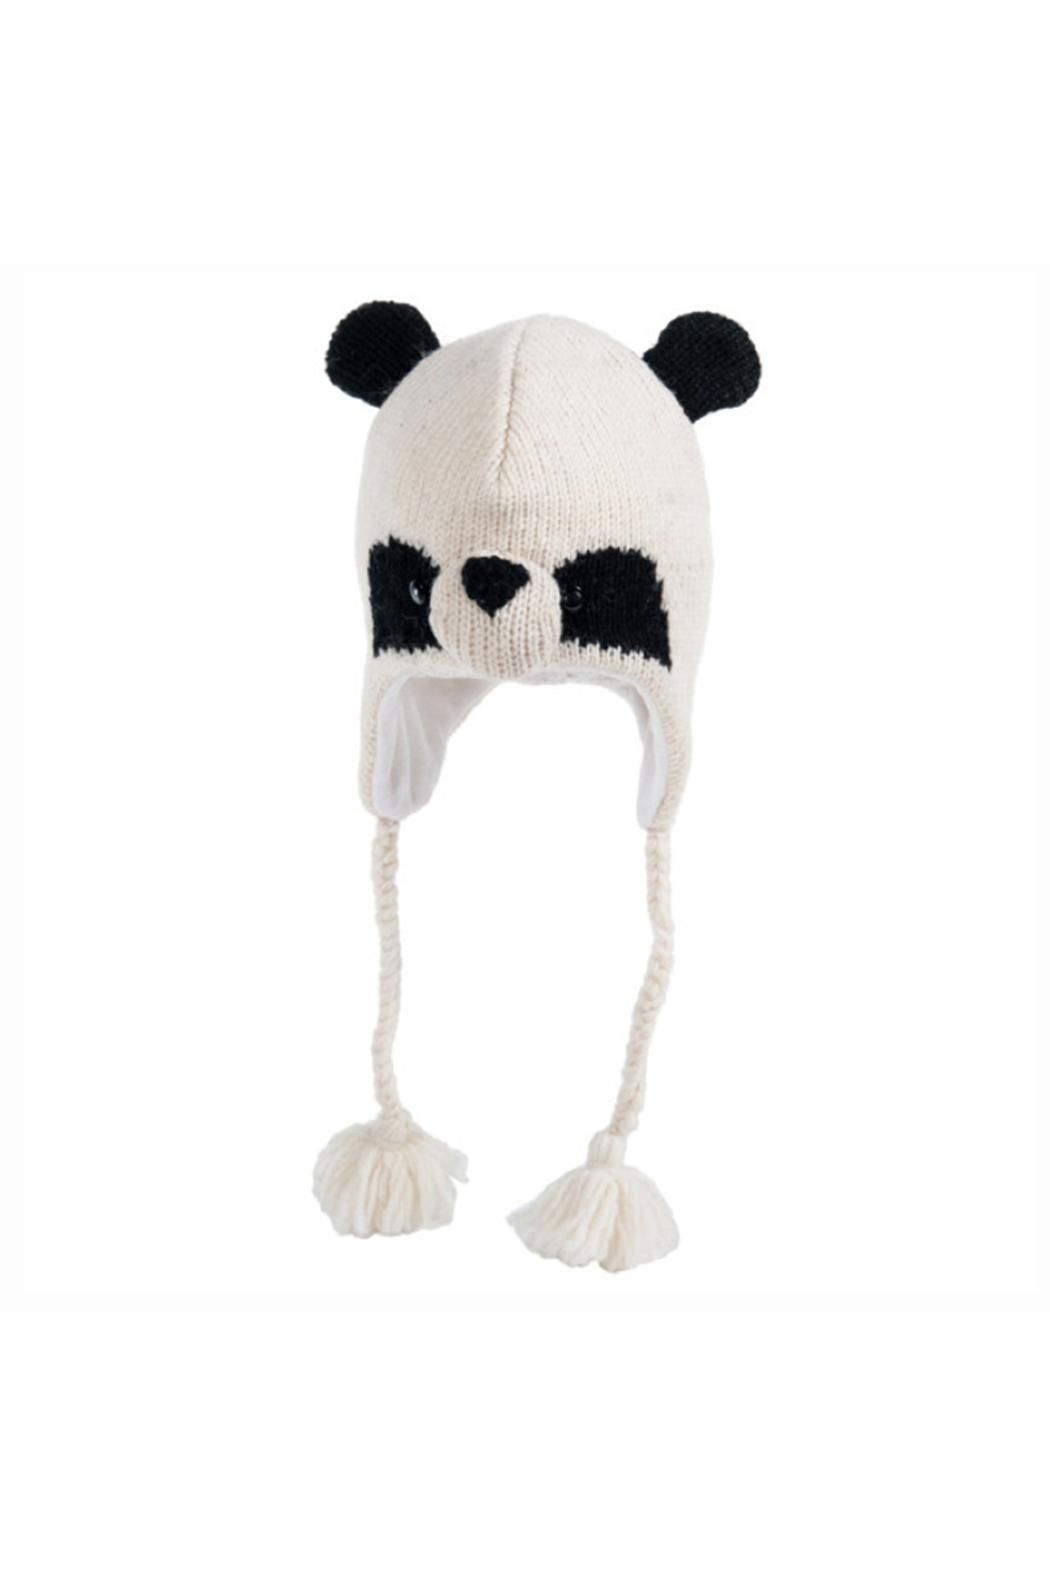 e7ca54d395e White and black panda hat. Wool with fleece lining. Toddler sizing. Panda  Bear Beanie by Nirvana Designs. Home   Gifts - Gifts - Gifts by Occasion -  Baby ...